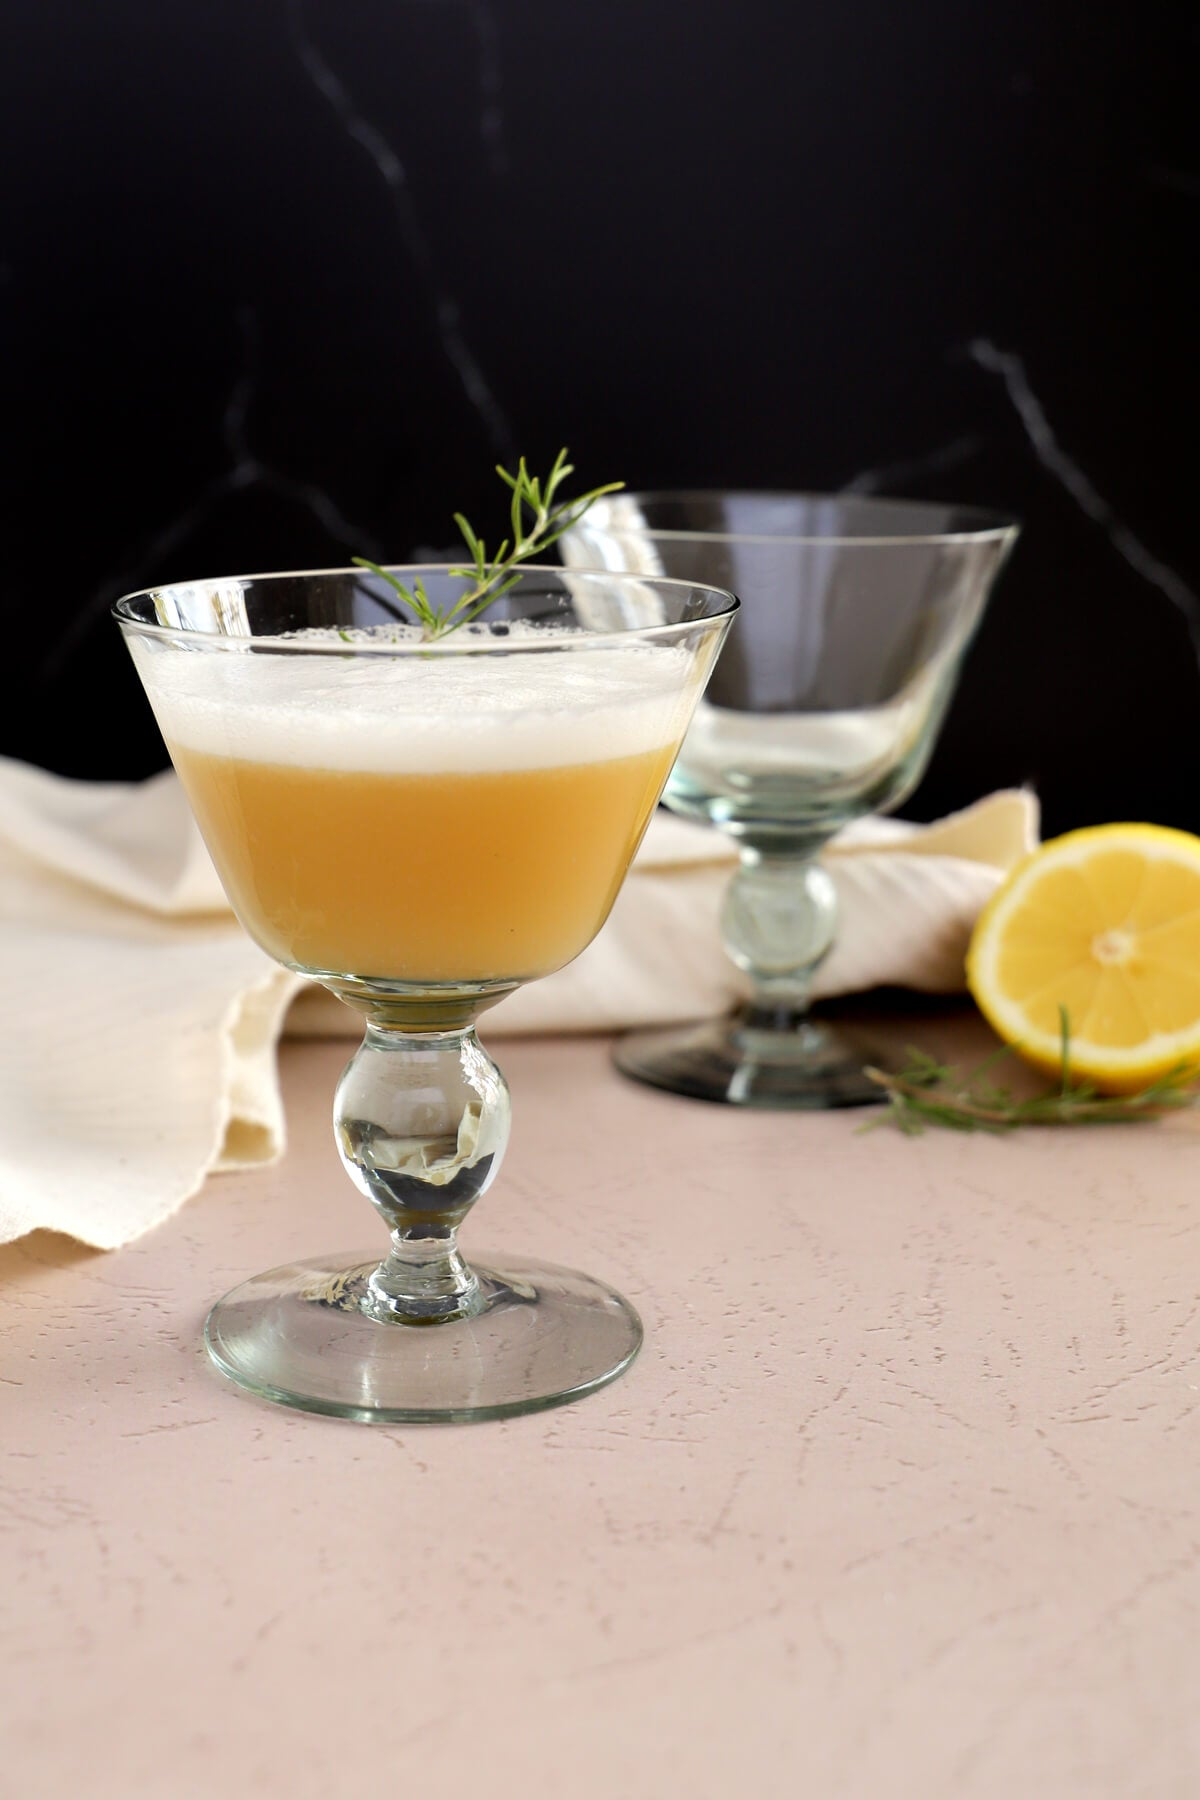 Recipe for a Whiskey sour cocktail with an egg white